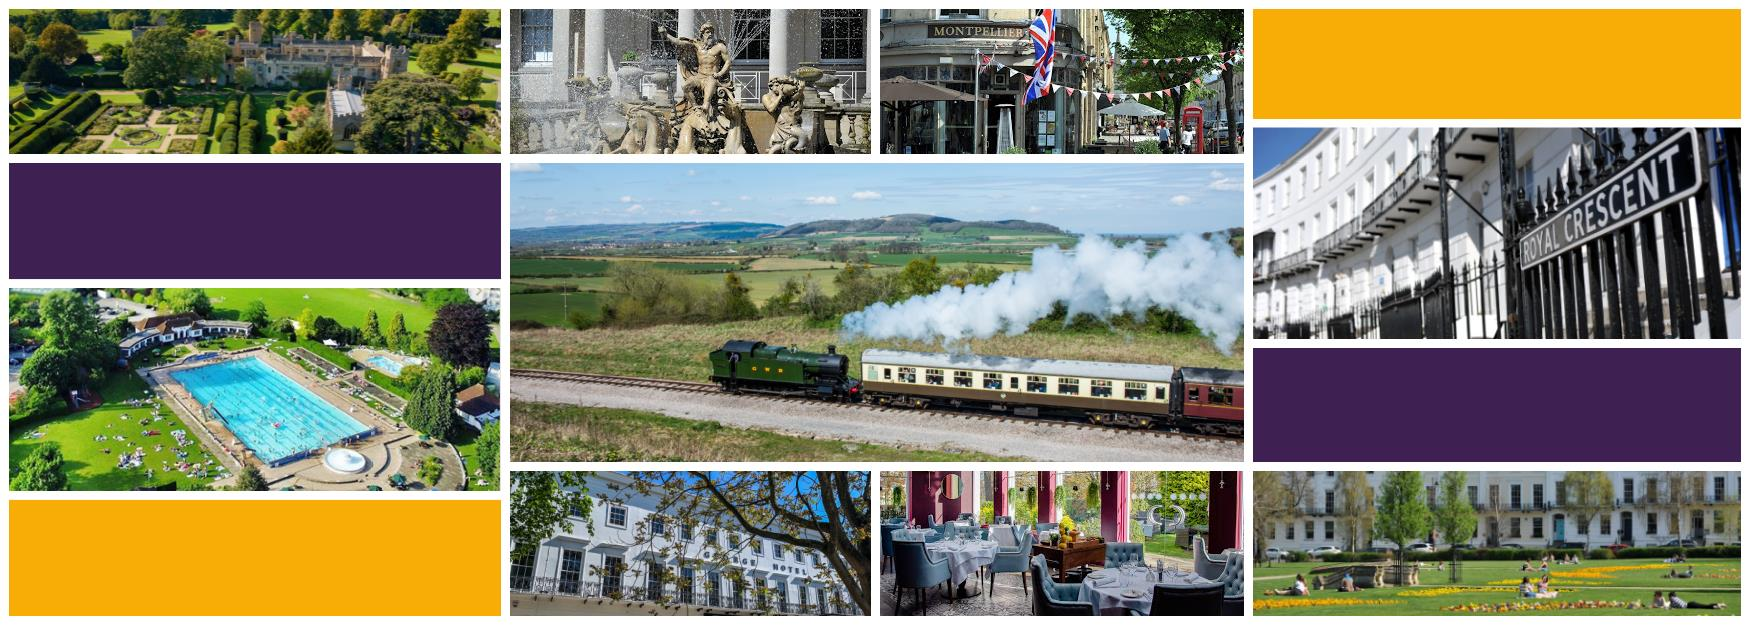 48 hours in Cheltenham and Cotswolds suggested itinerary